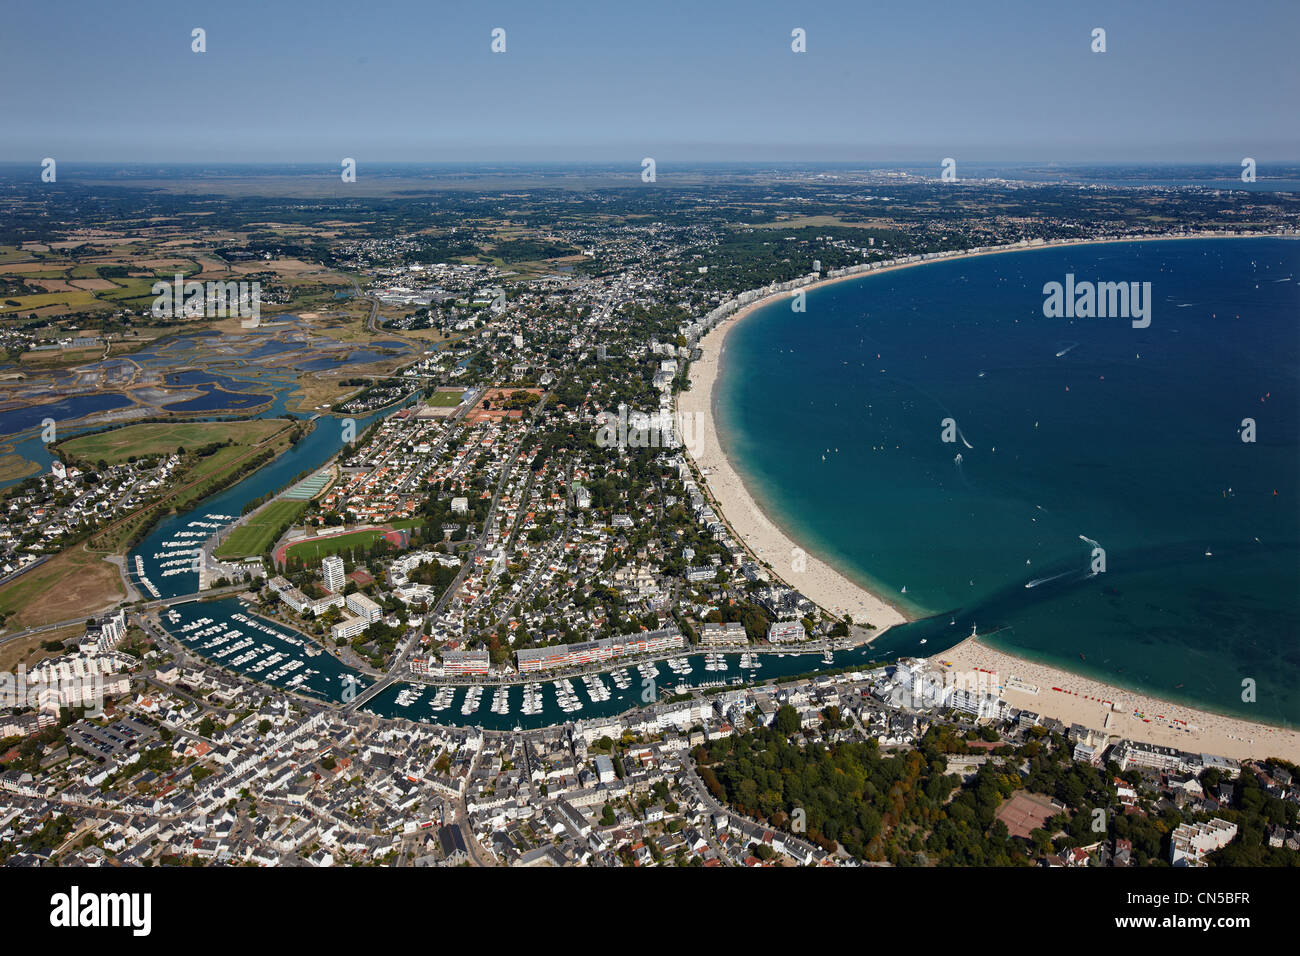 France loire atlantique baie du pouliguen la baule le pouliguen stock photo royalty free - La baule office du tourisme ...